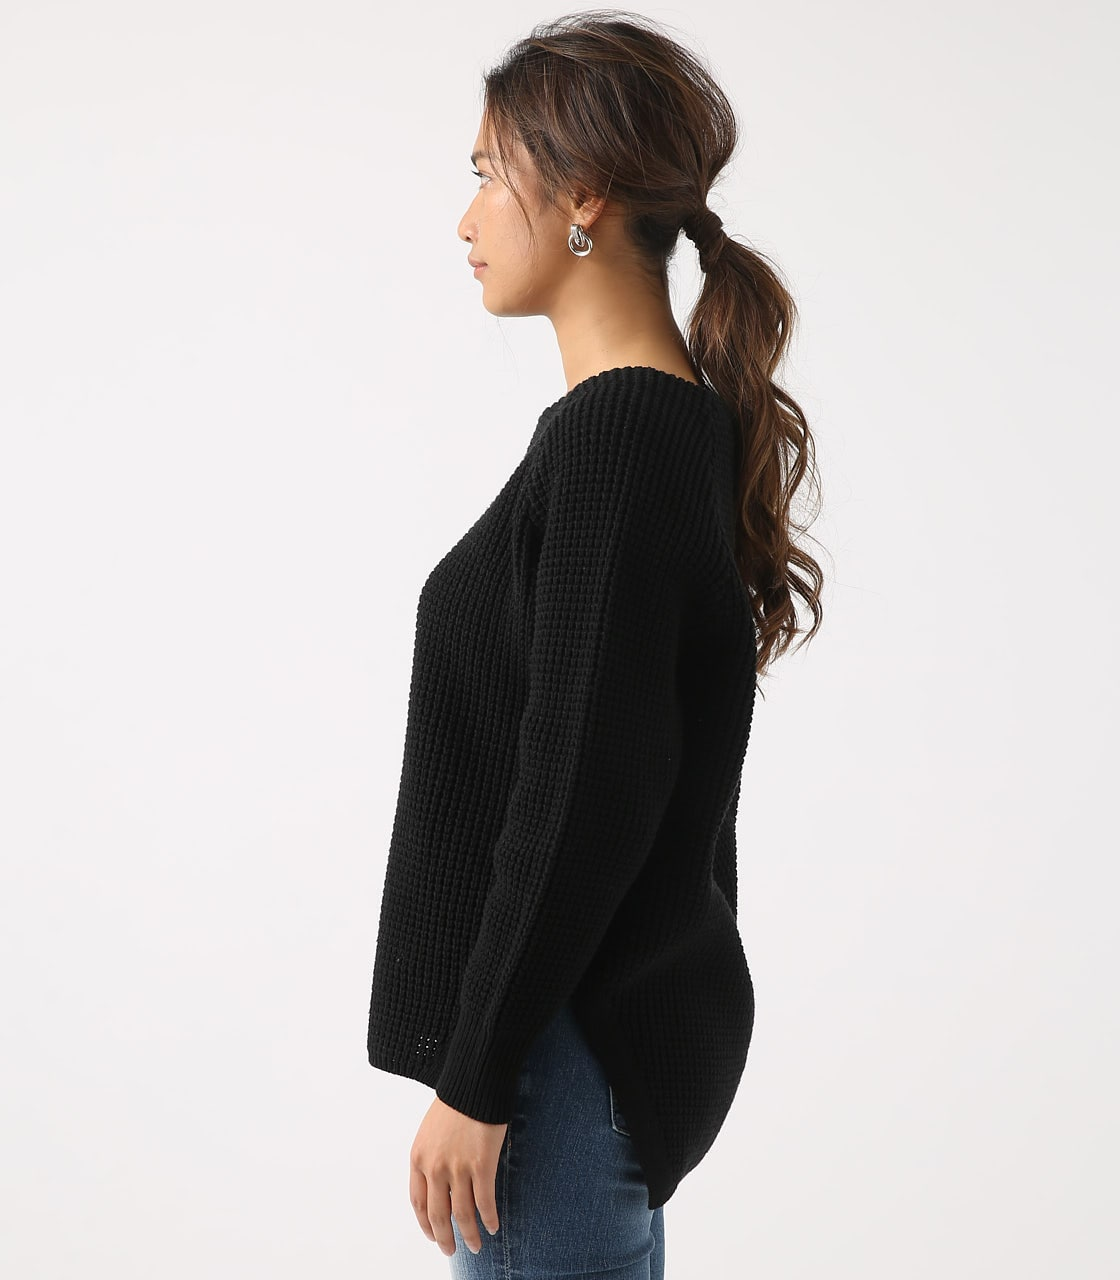 【AZUL BY MOUSSY】WAFFLE KNIT TUNIC 詳細画像 BLK 6